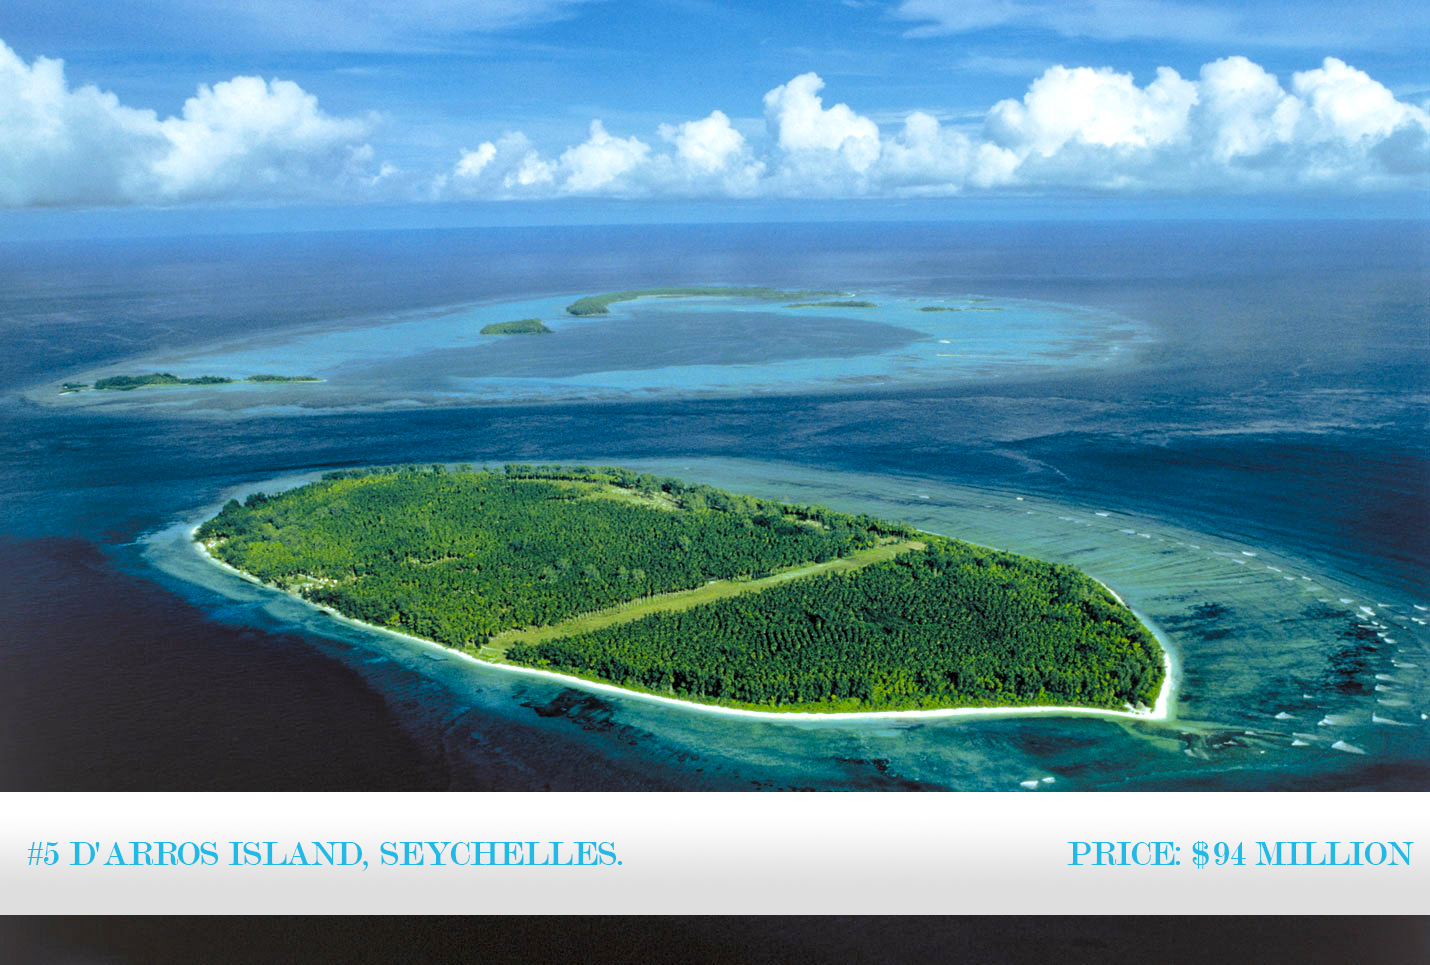 World's Most Expensive Islands 2013: #5 D'Arros Island, Seychelles. ~ Price: $94 million